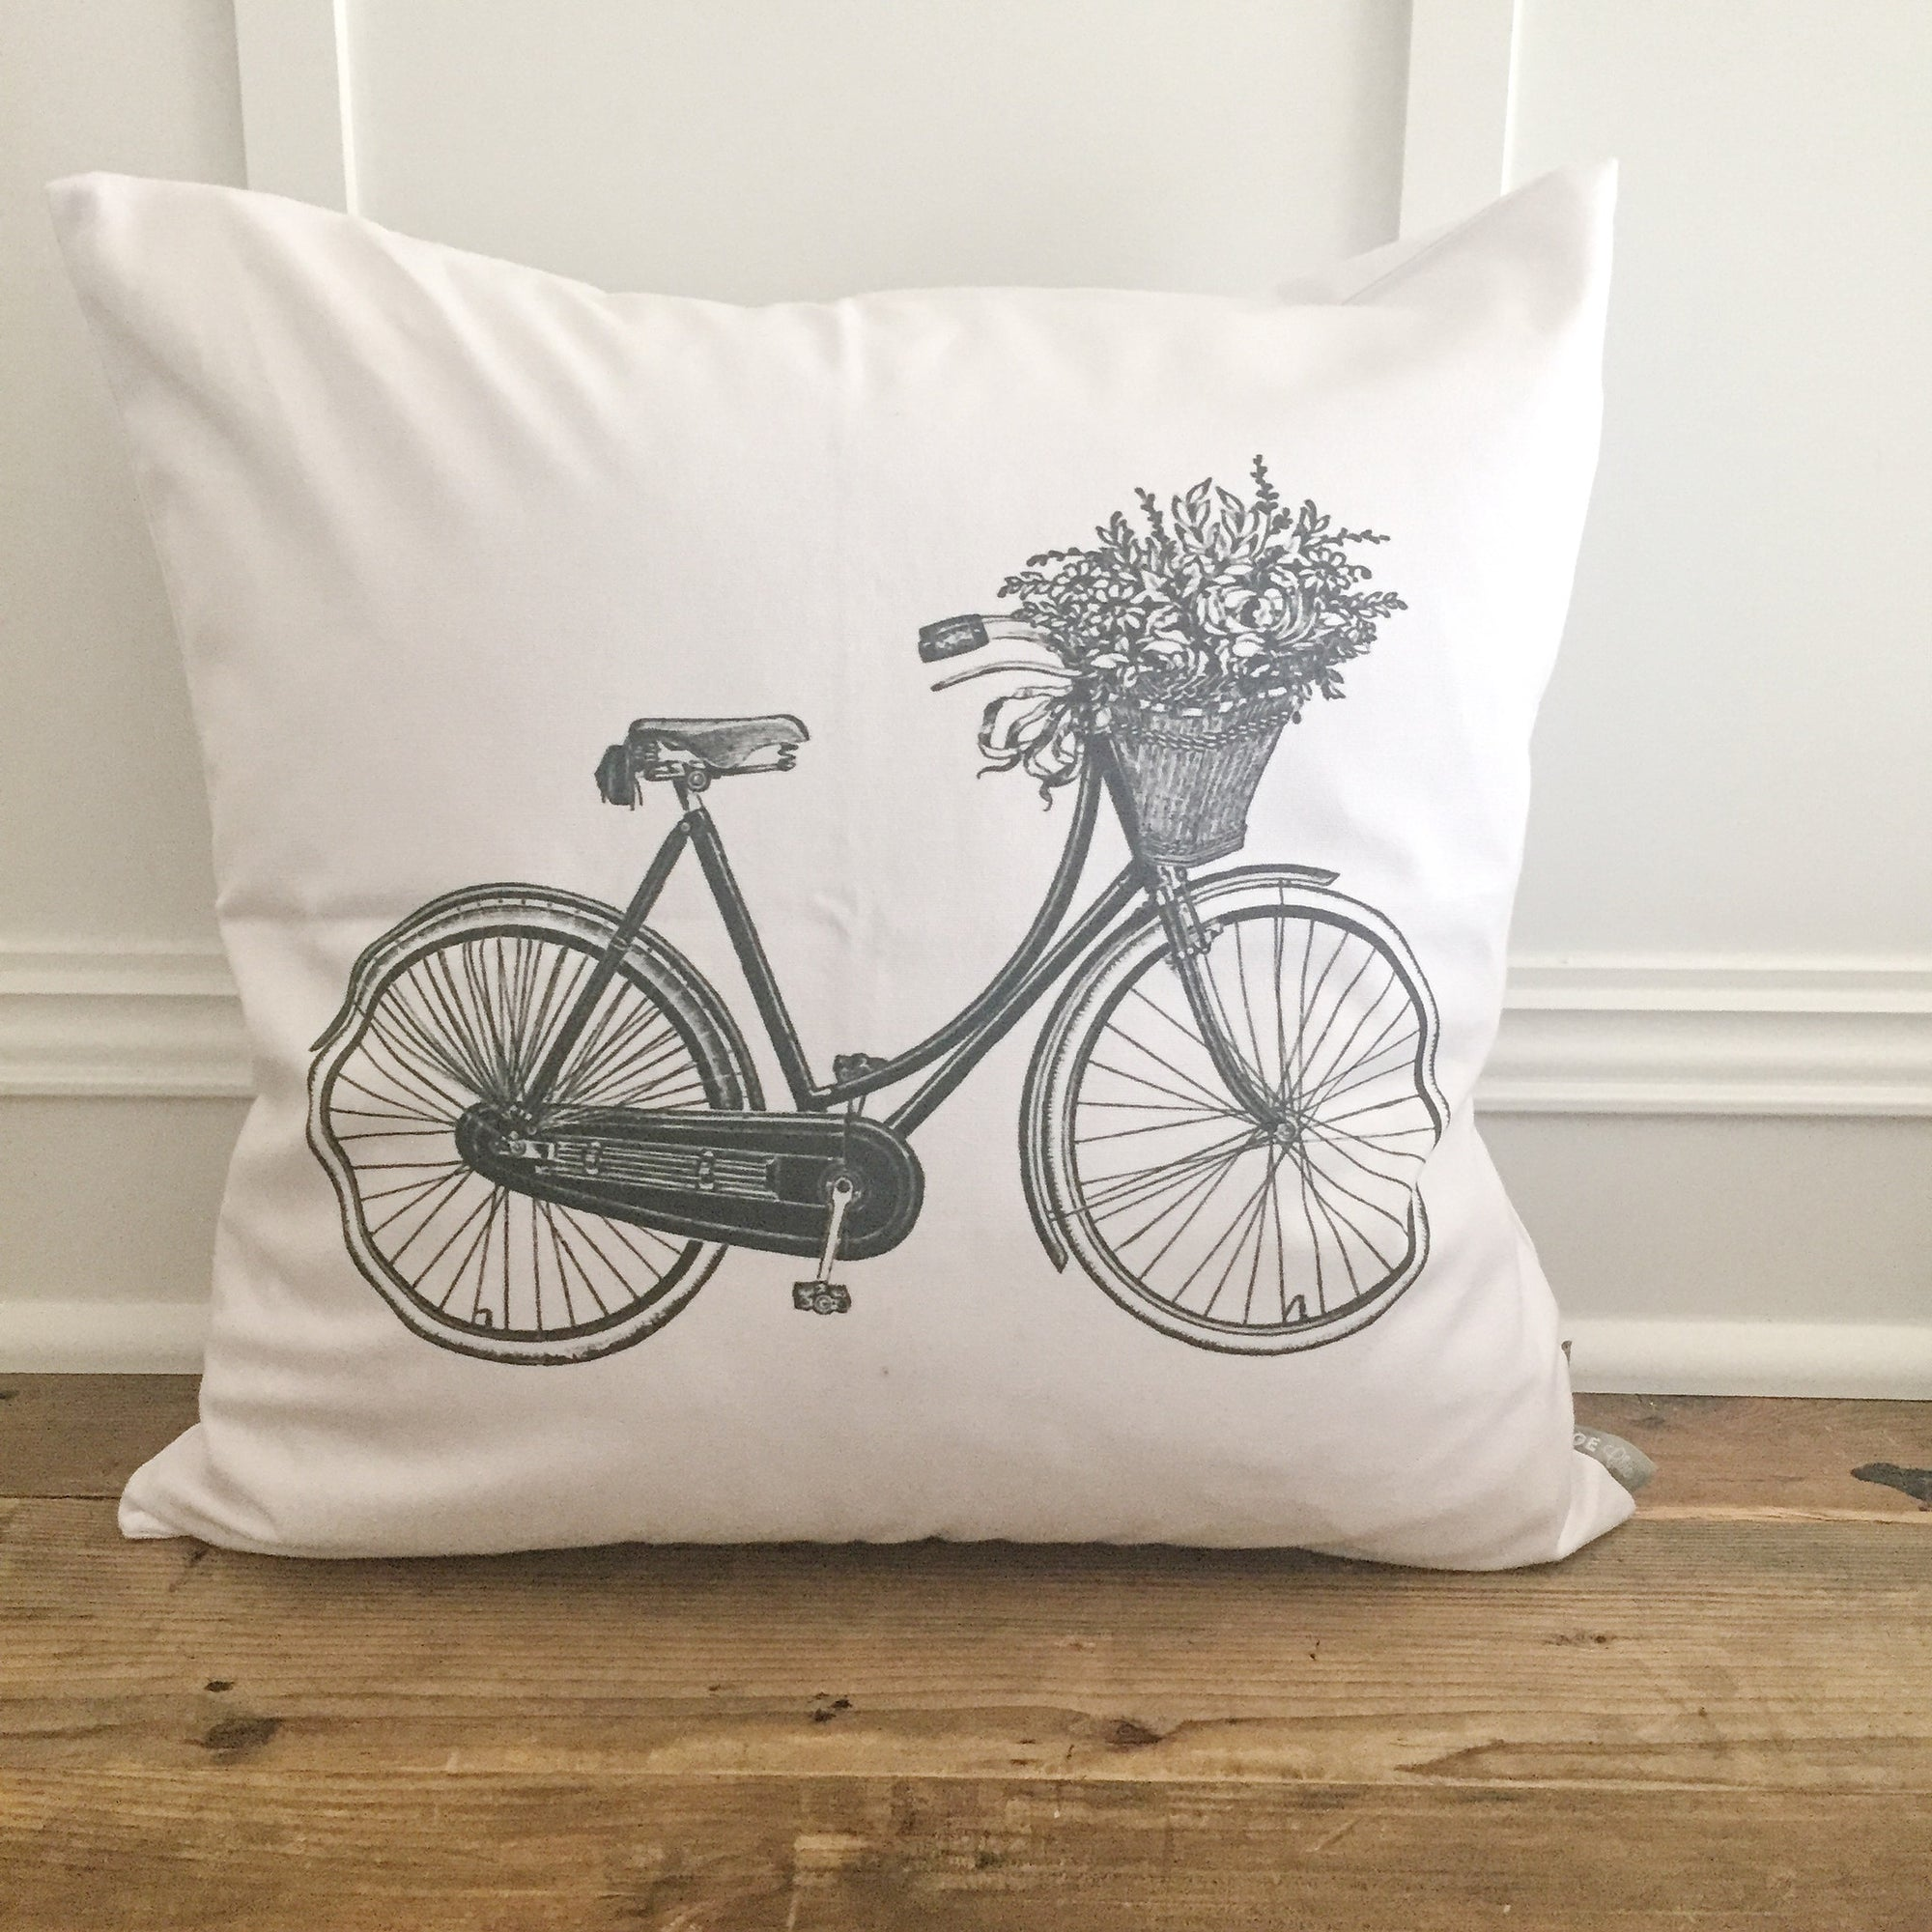 Vintage Bike with Flowers Pillow Cover - Linen and Ivory